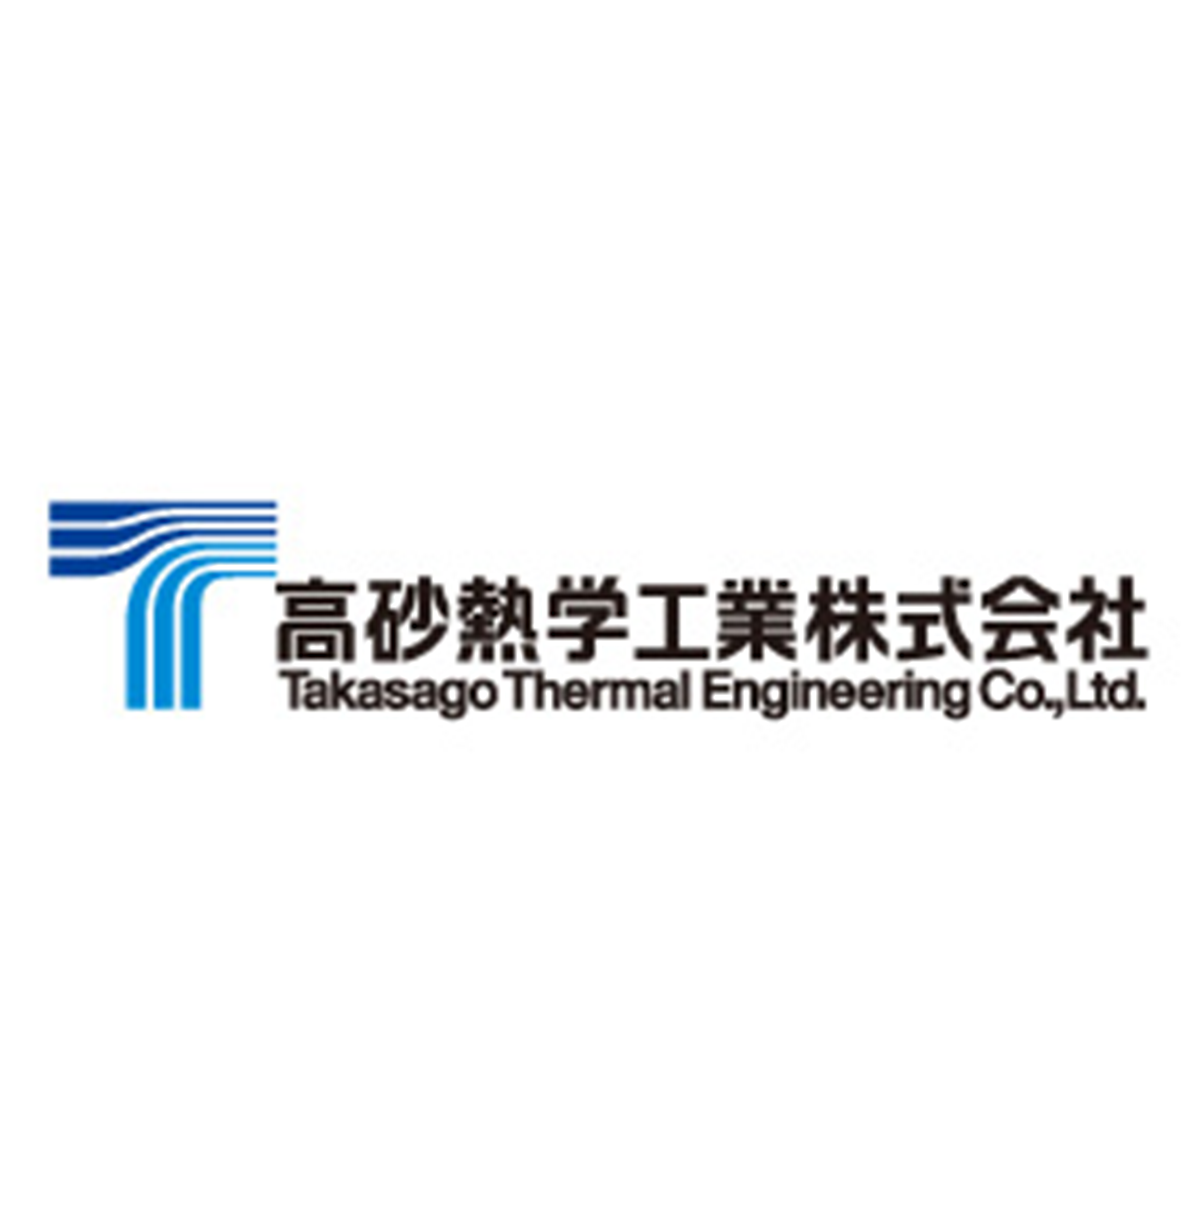 Takasago Thermal Engineering